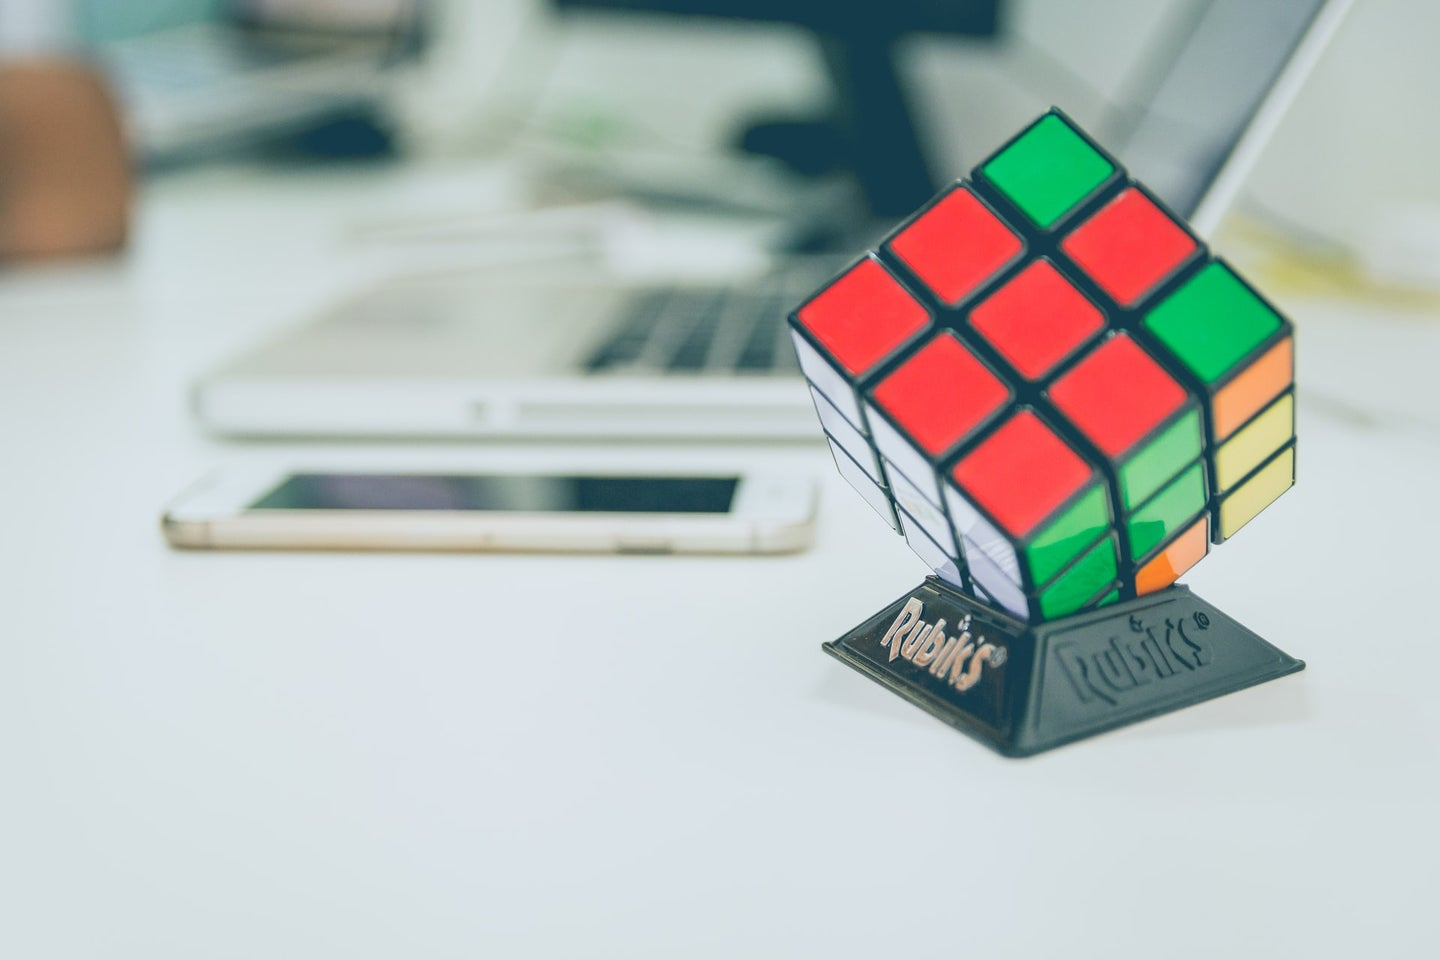 A Rubik's Cube displayed on a stand